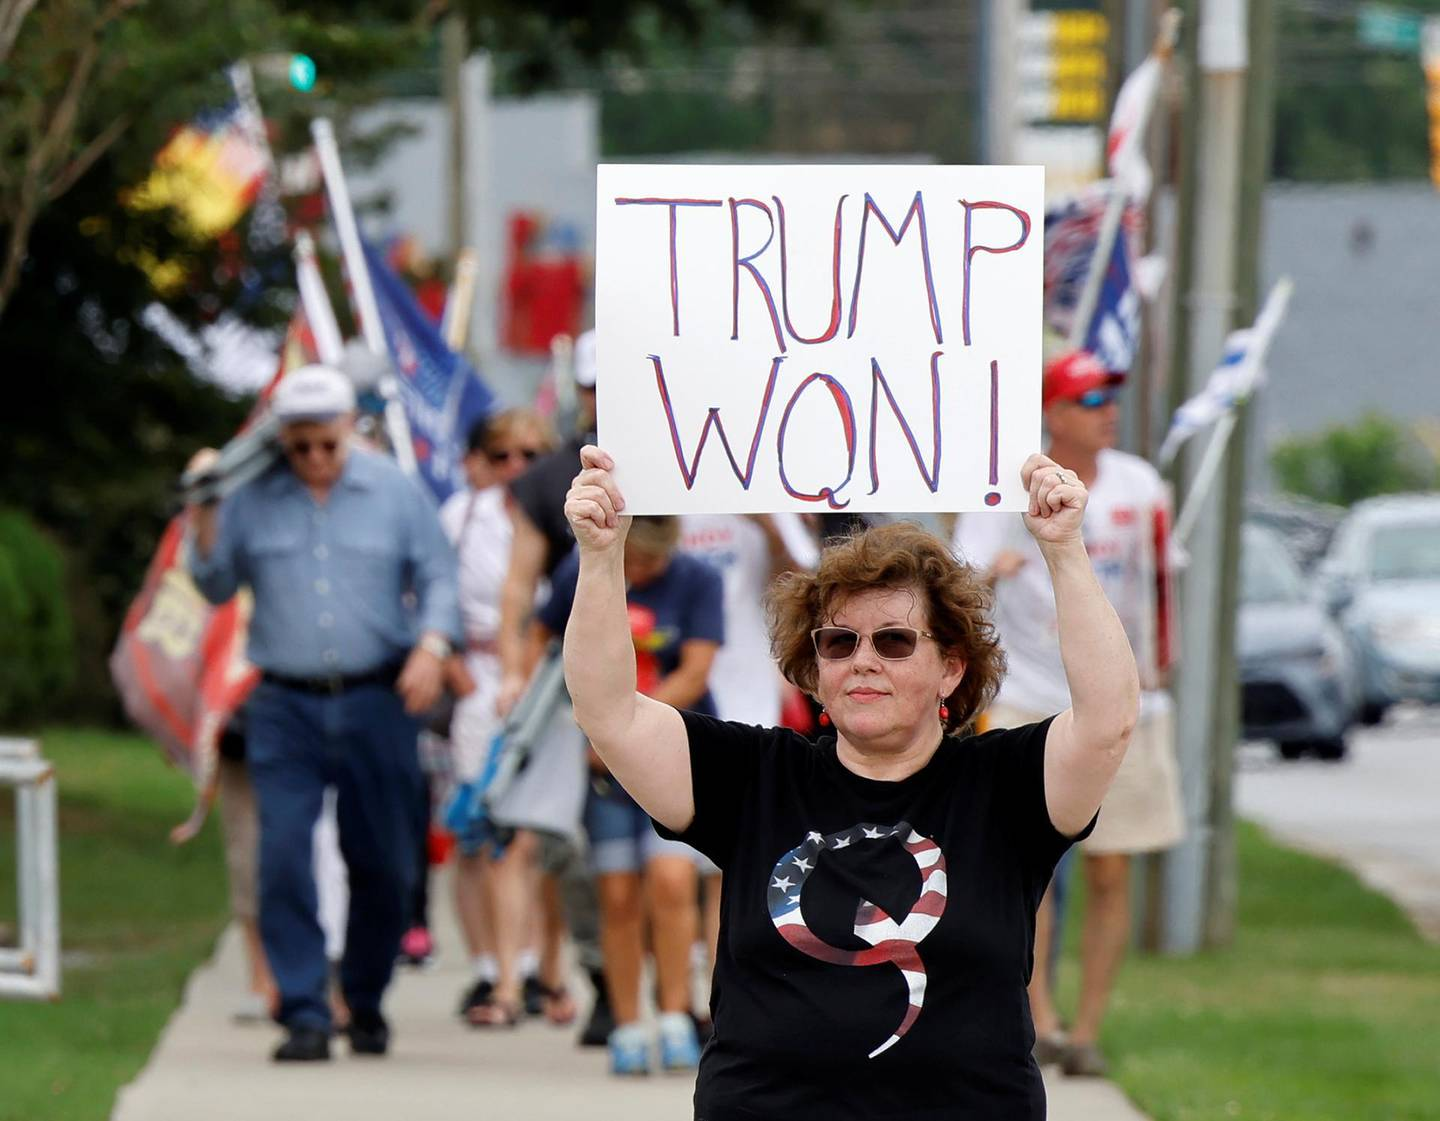 A supporter of former U.S. President Donald Trump wears a QAnon shirt while holding a sign stating he won the 2020 election, outside the North Carolina GOP convention in Greenville, North Carolina, U.S. June 5, 2021.  REUTERS/Jonathan Drake